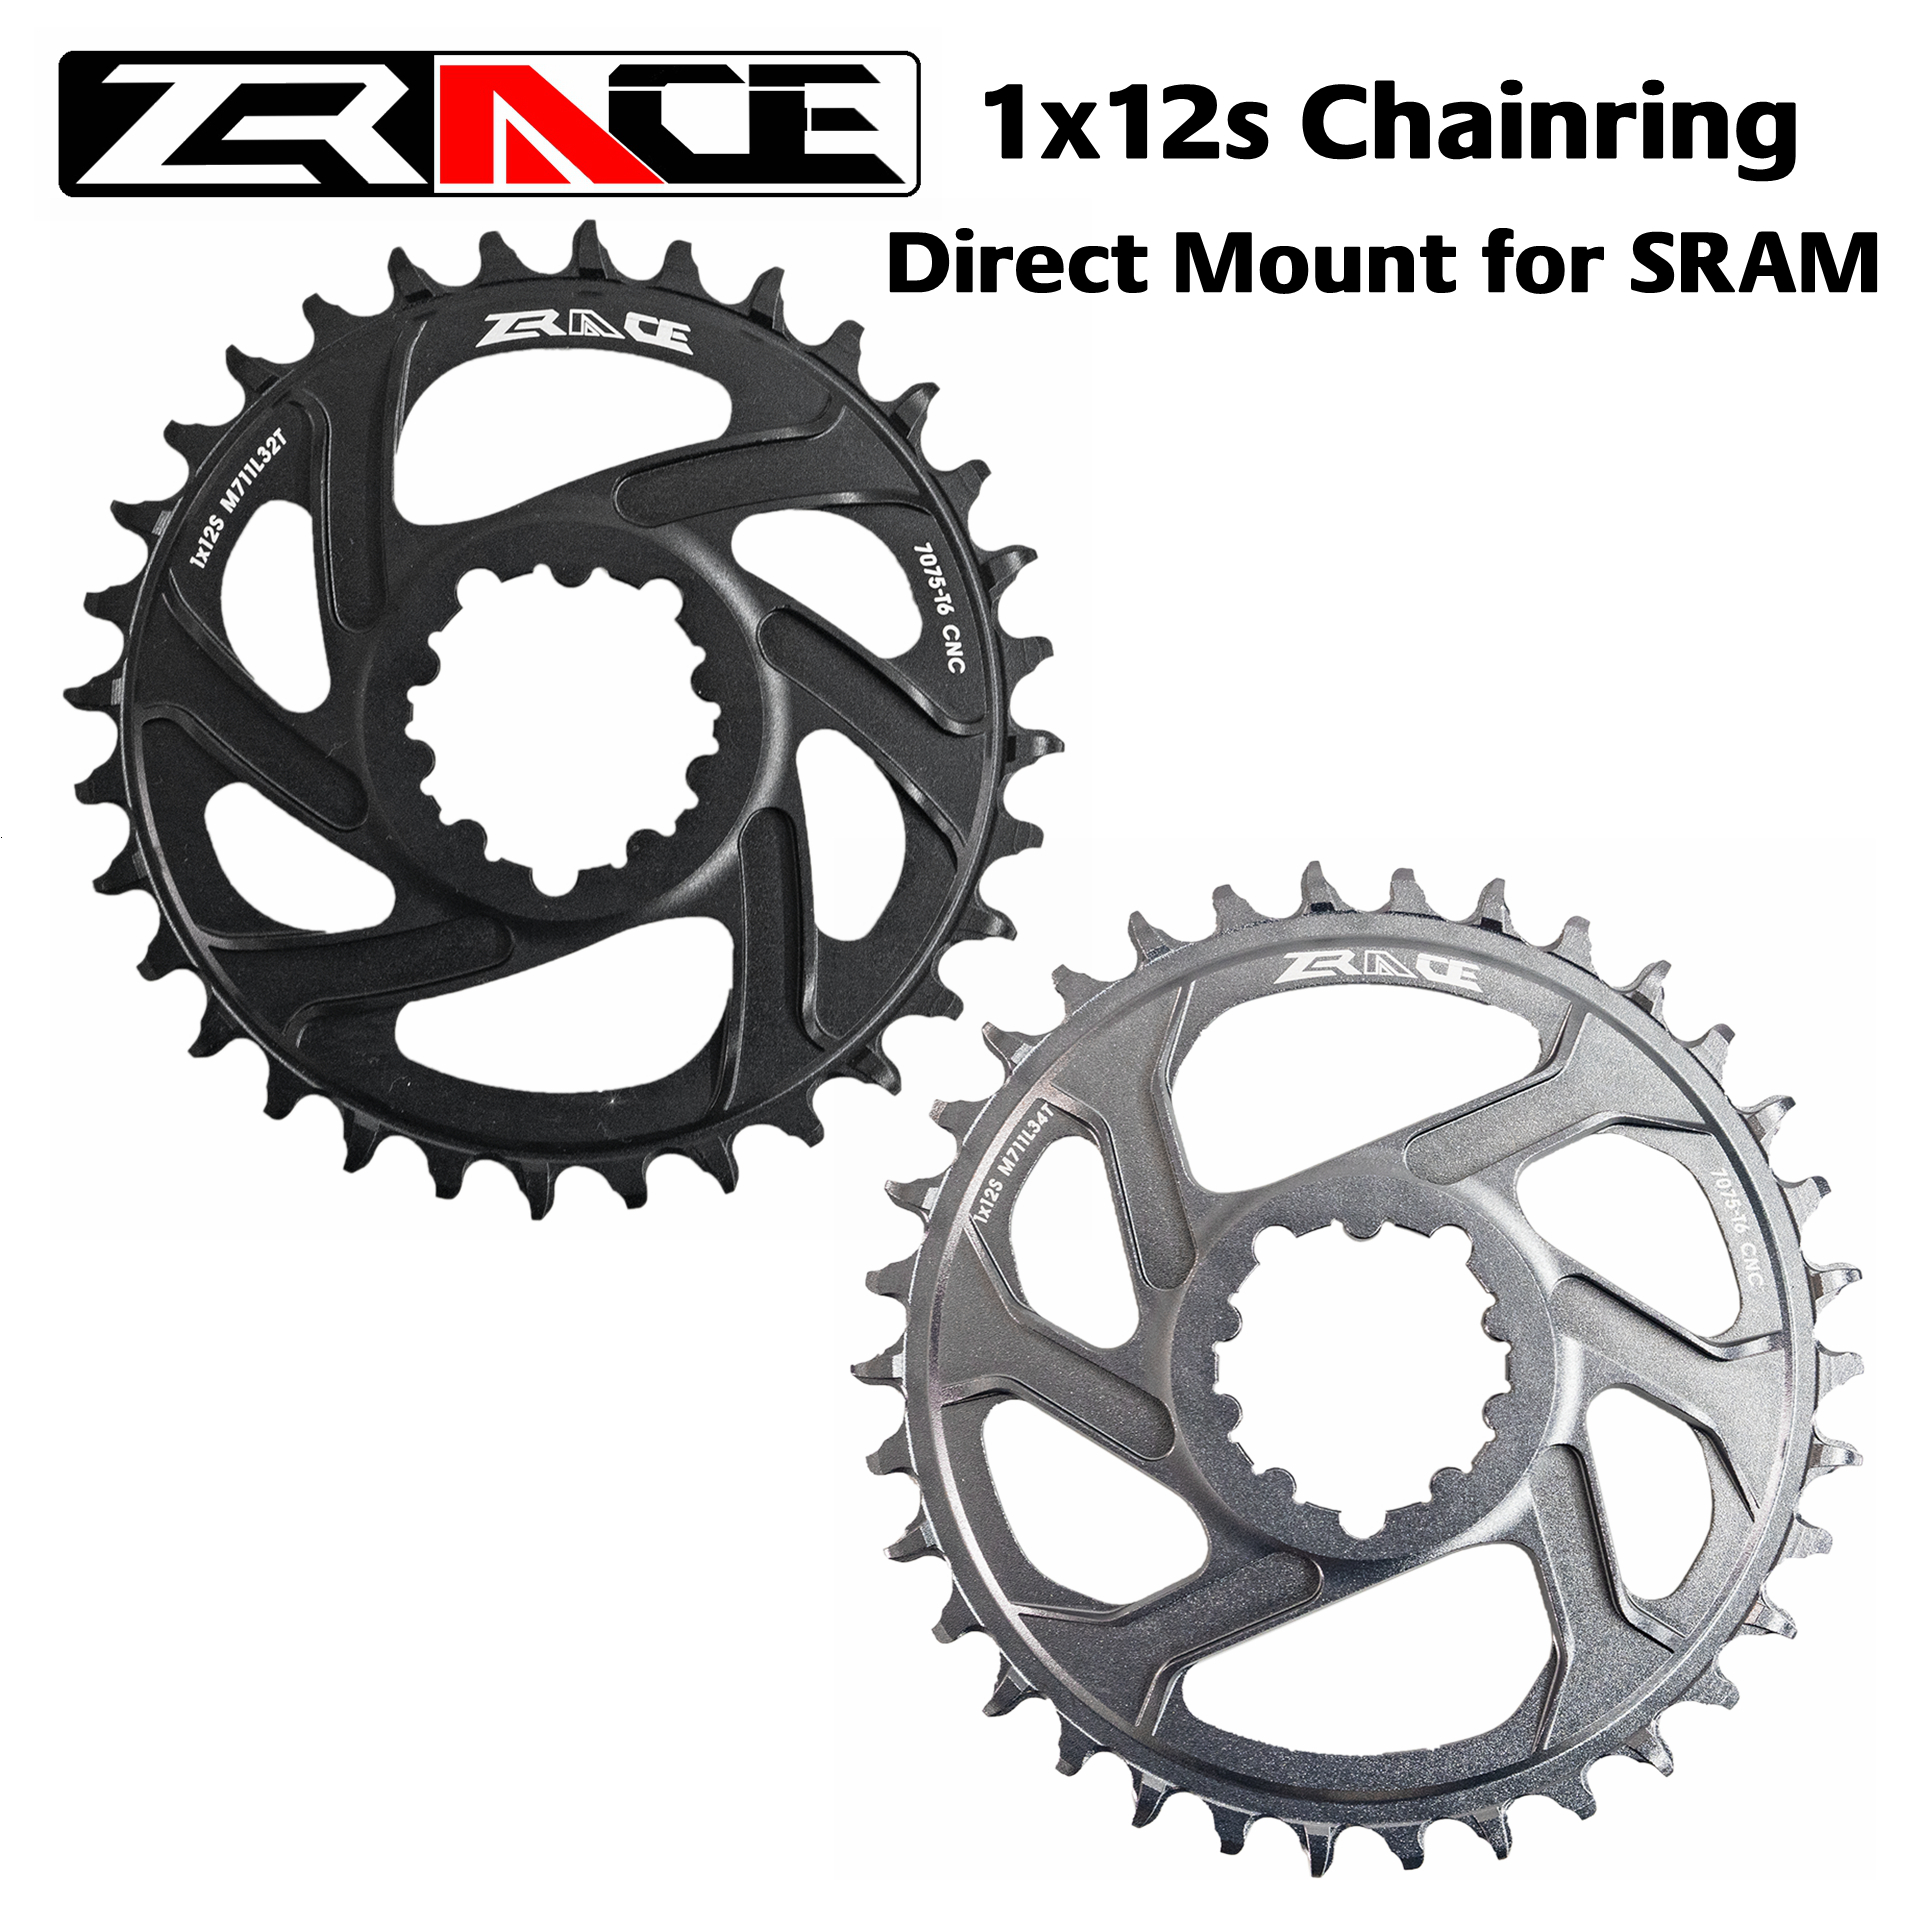 Offset 6mm 12s Chainring MTB Chainwheel for SRAM Direct Mount compatible Eagle